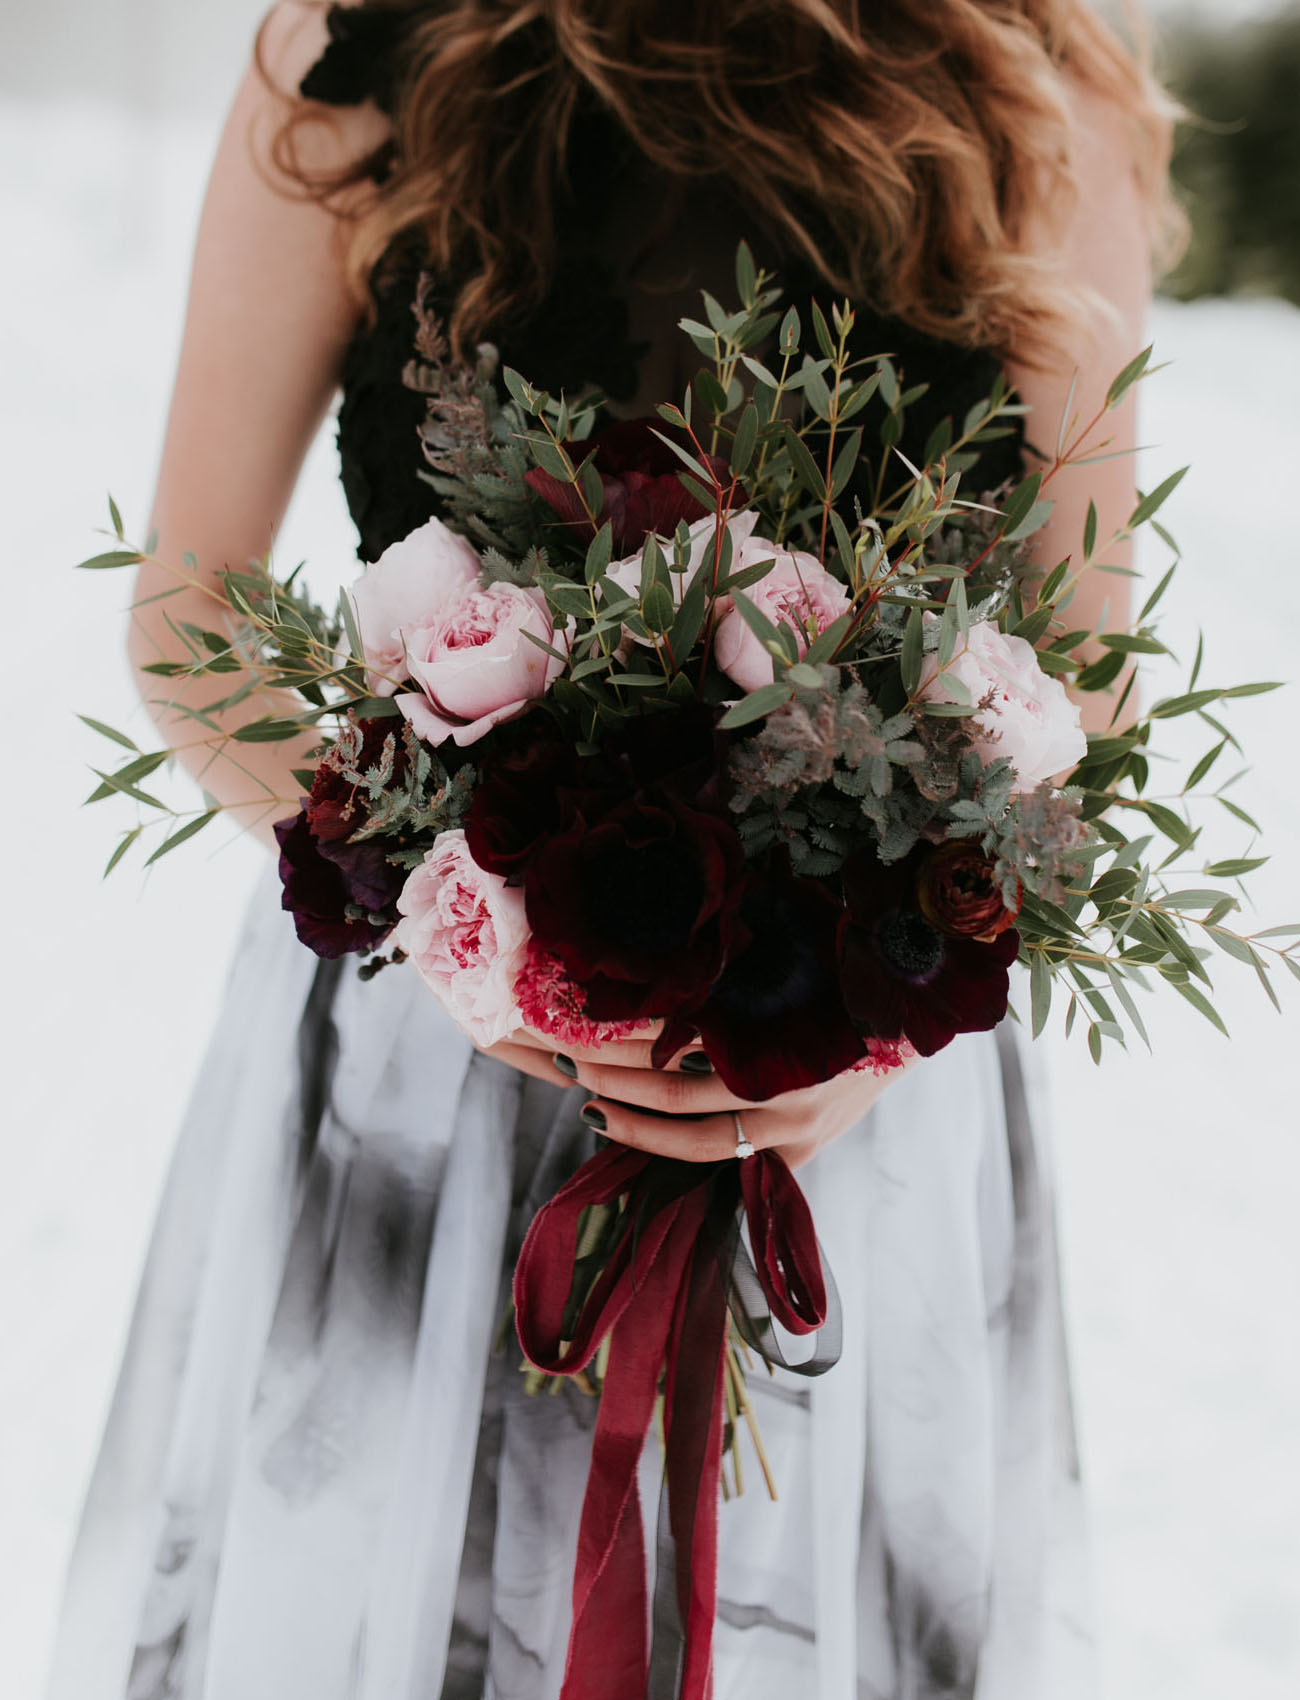 The bride was carrrying a matching bouquet with burgundy velvet ribbon